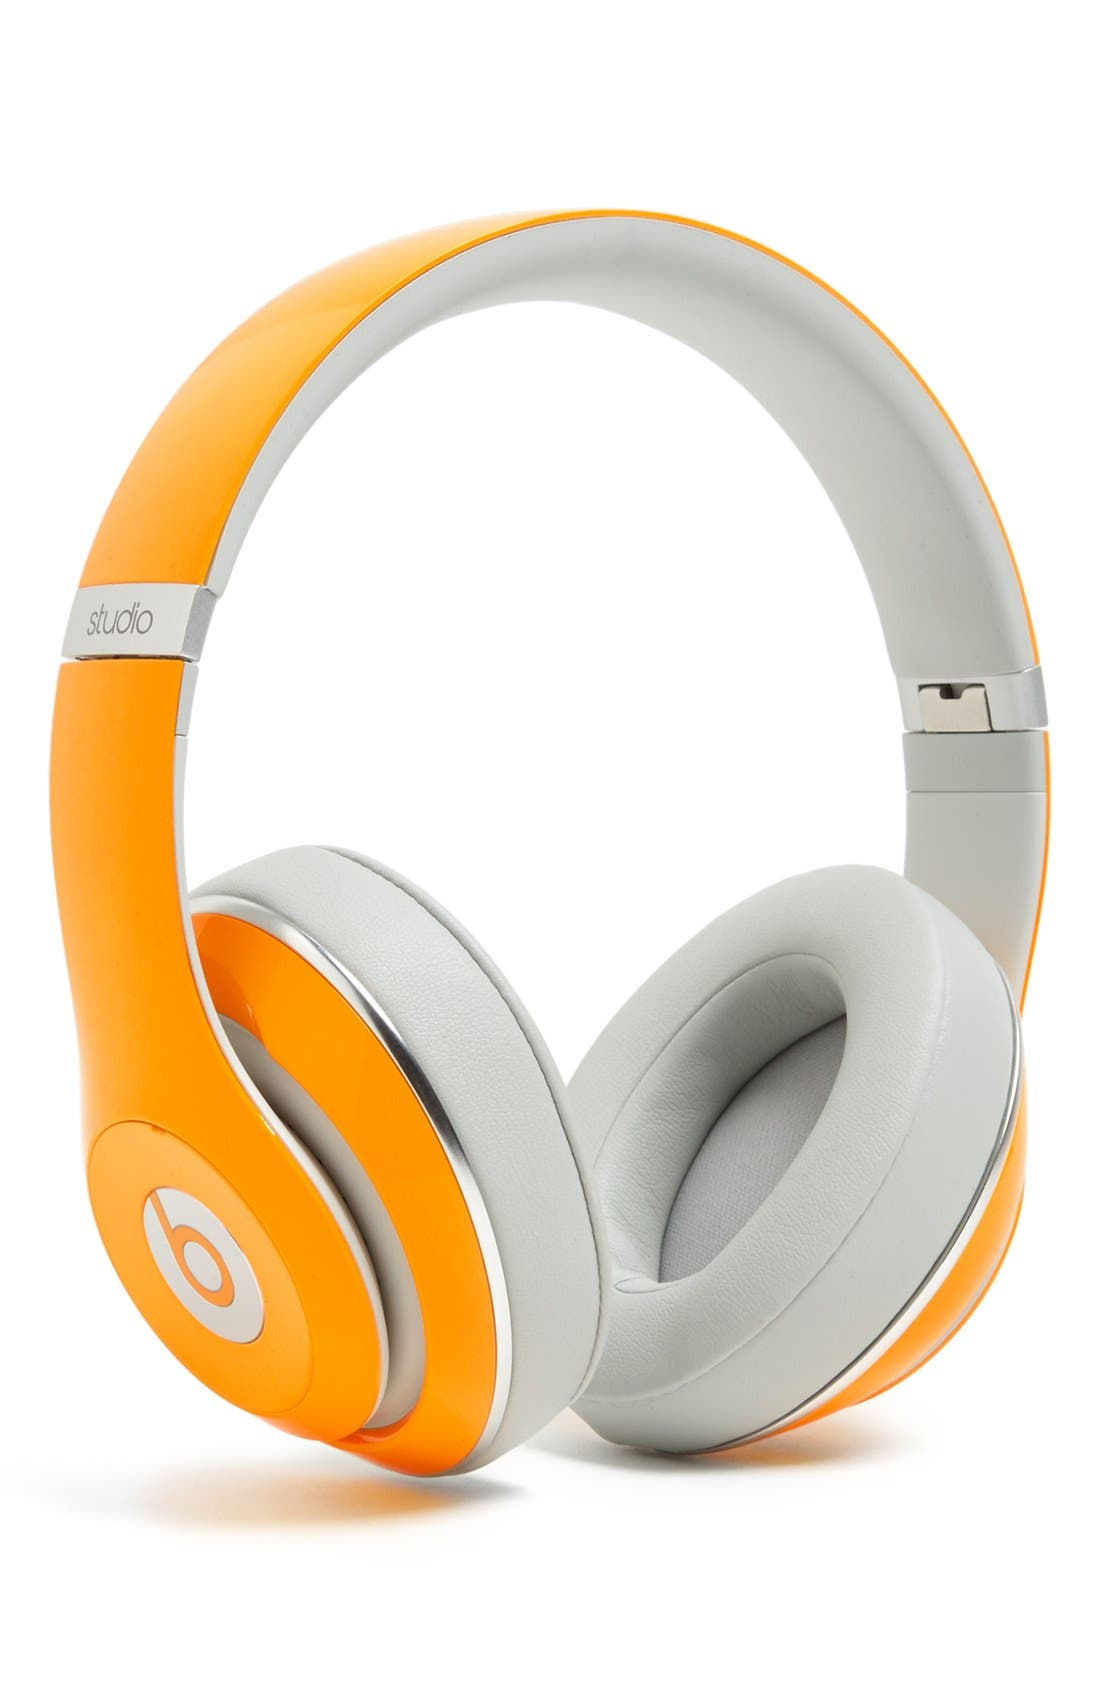 Alternate Image 1 Selected - Beats by Dr. Dre 'Studio' Limited Edition High Definition Headphones